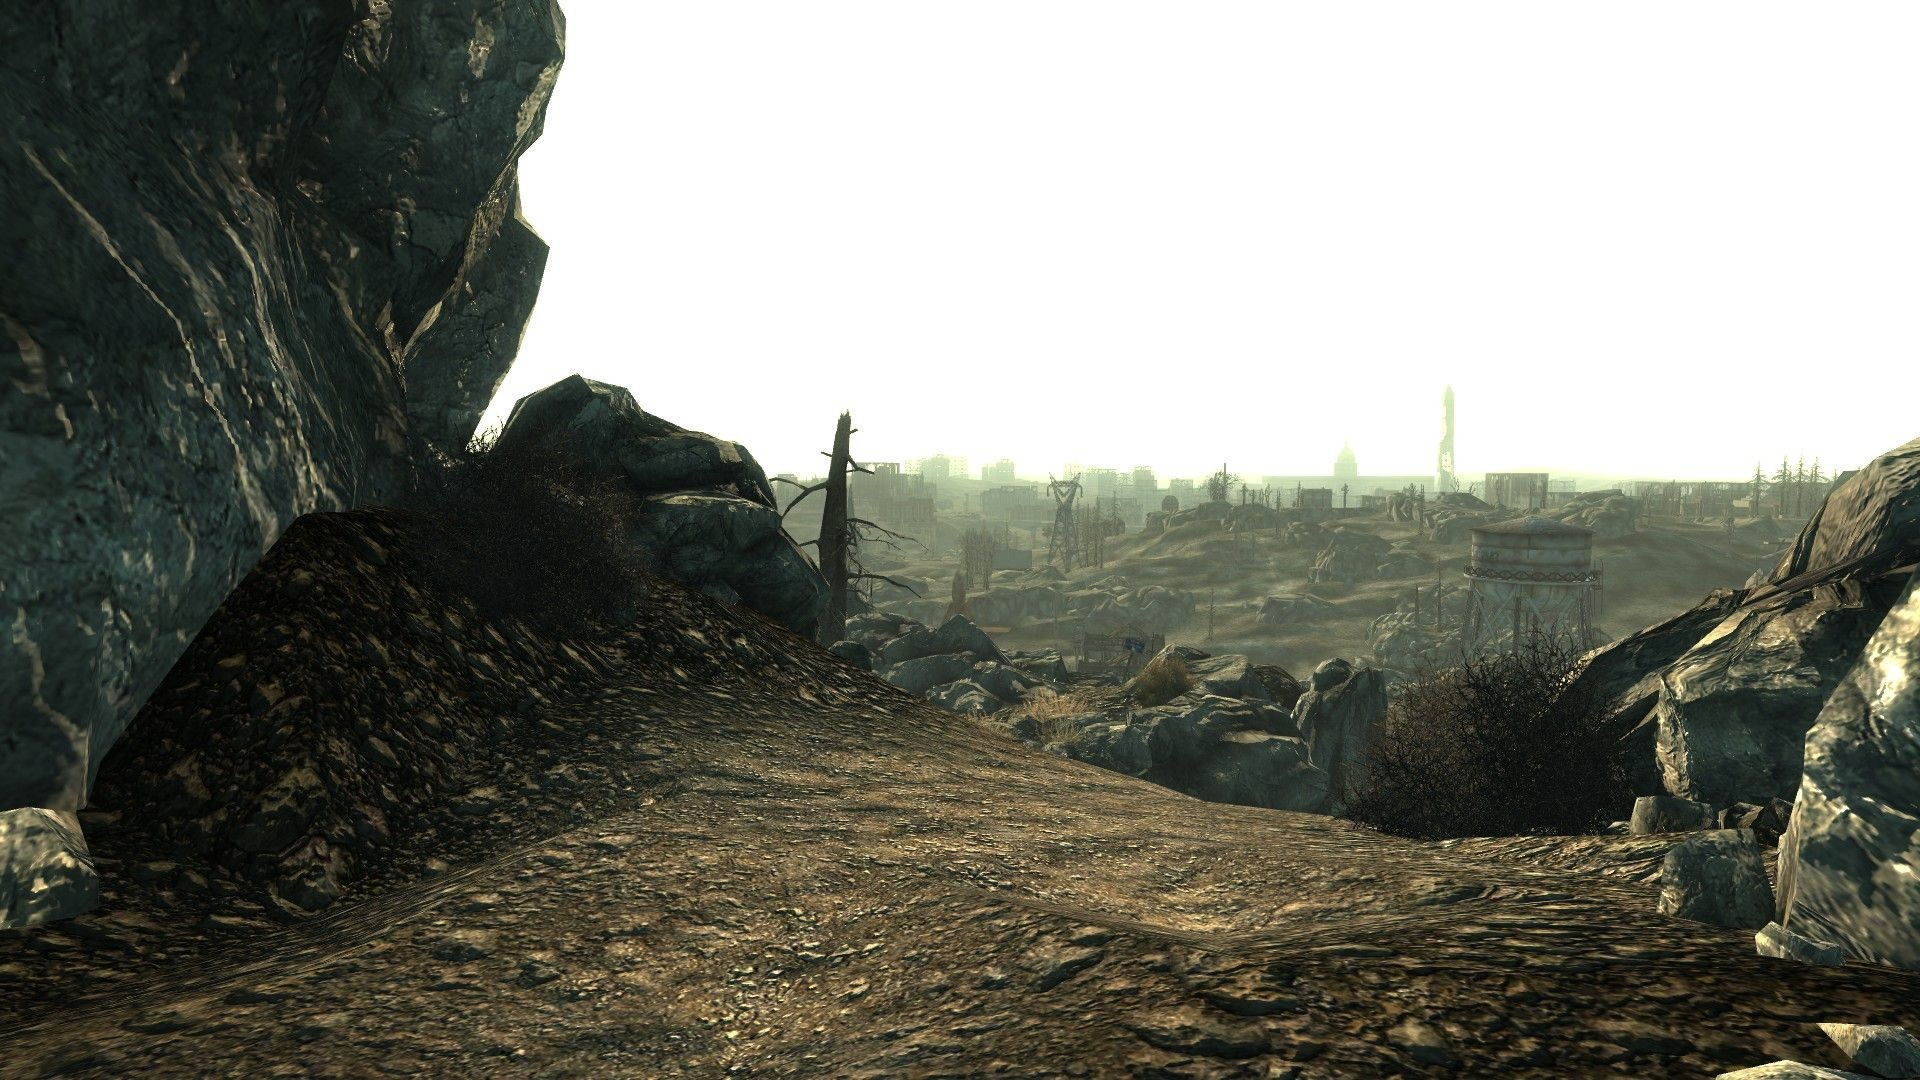 1920x1080 Fallout 3 Screenshot. The Background